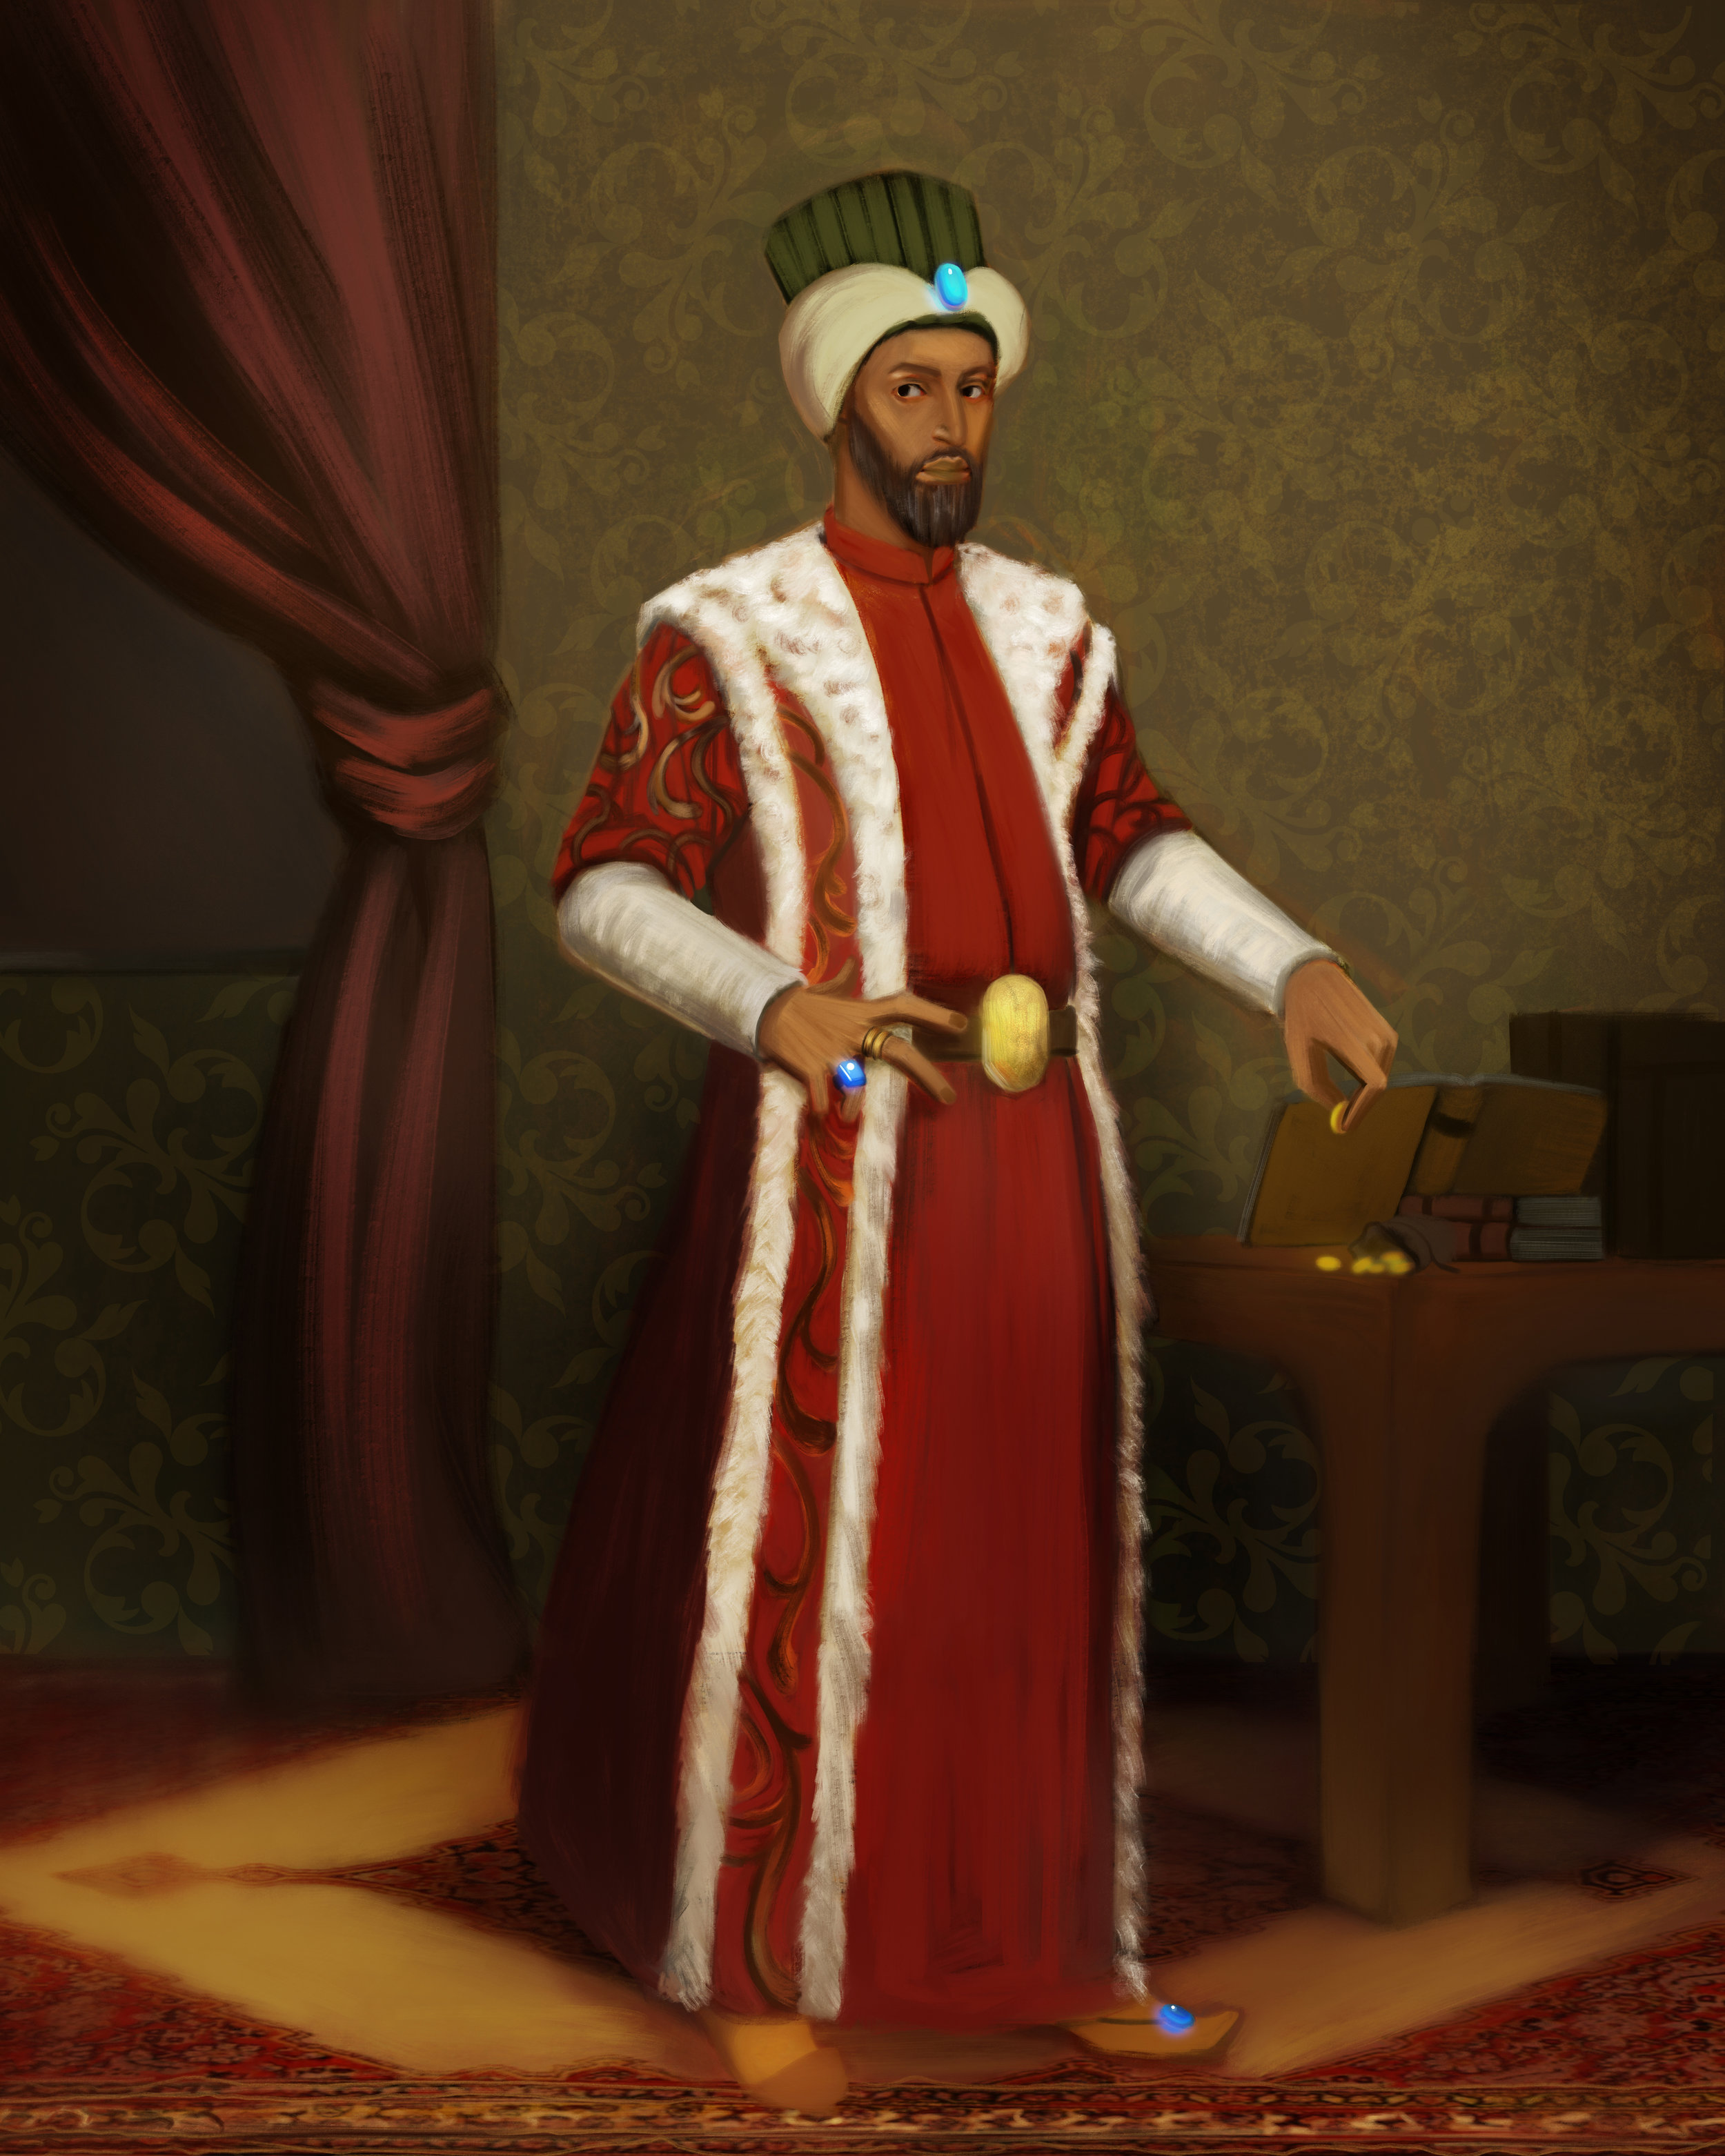 The Sultan has commanded Scheherazade to tell him a story every night, or else face the executioner -- only you can save her!